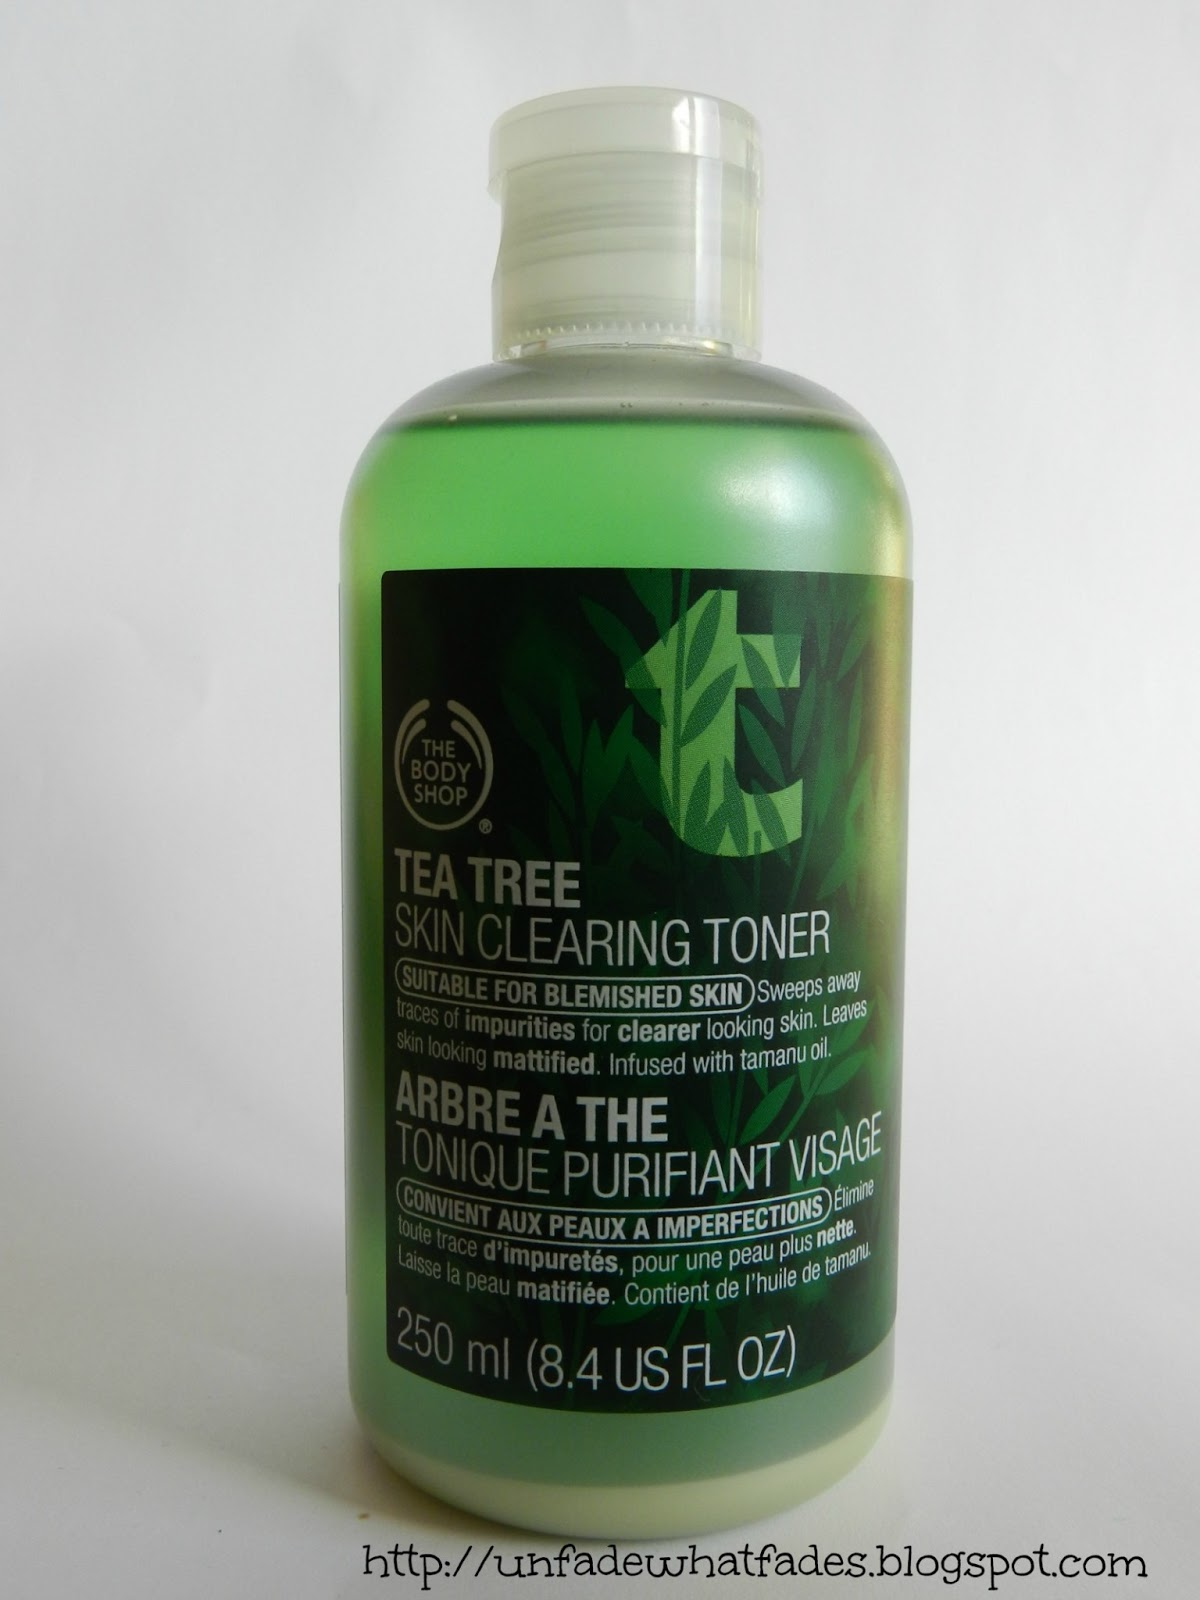 Unfade What Fades The Body Shop Tea Tree Clearing Toner